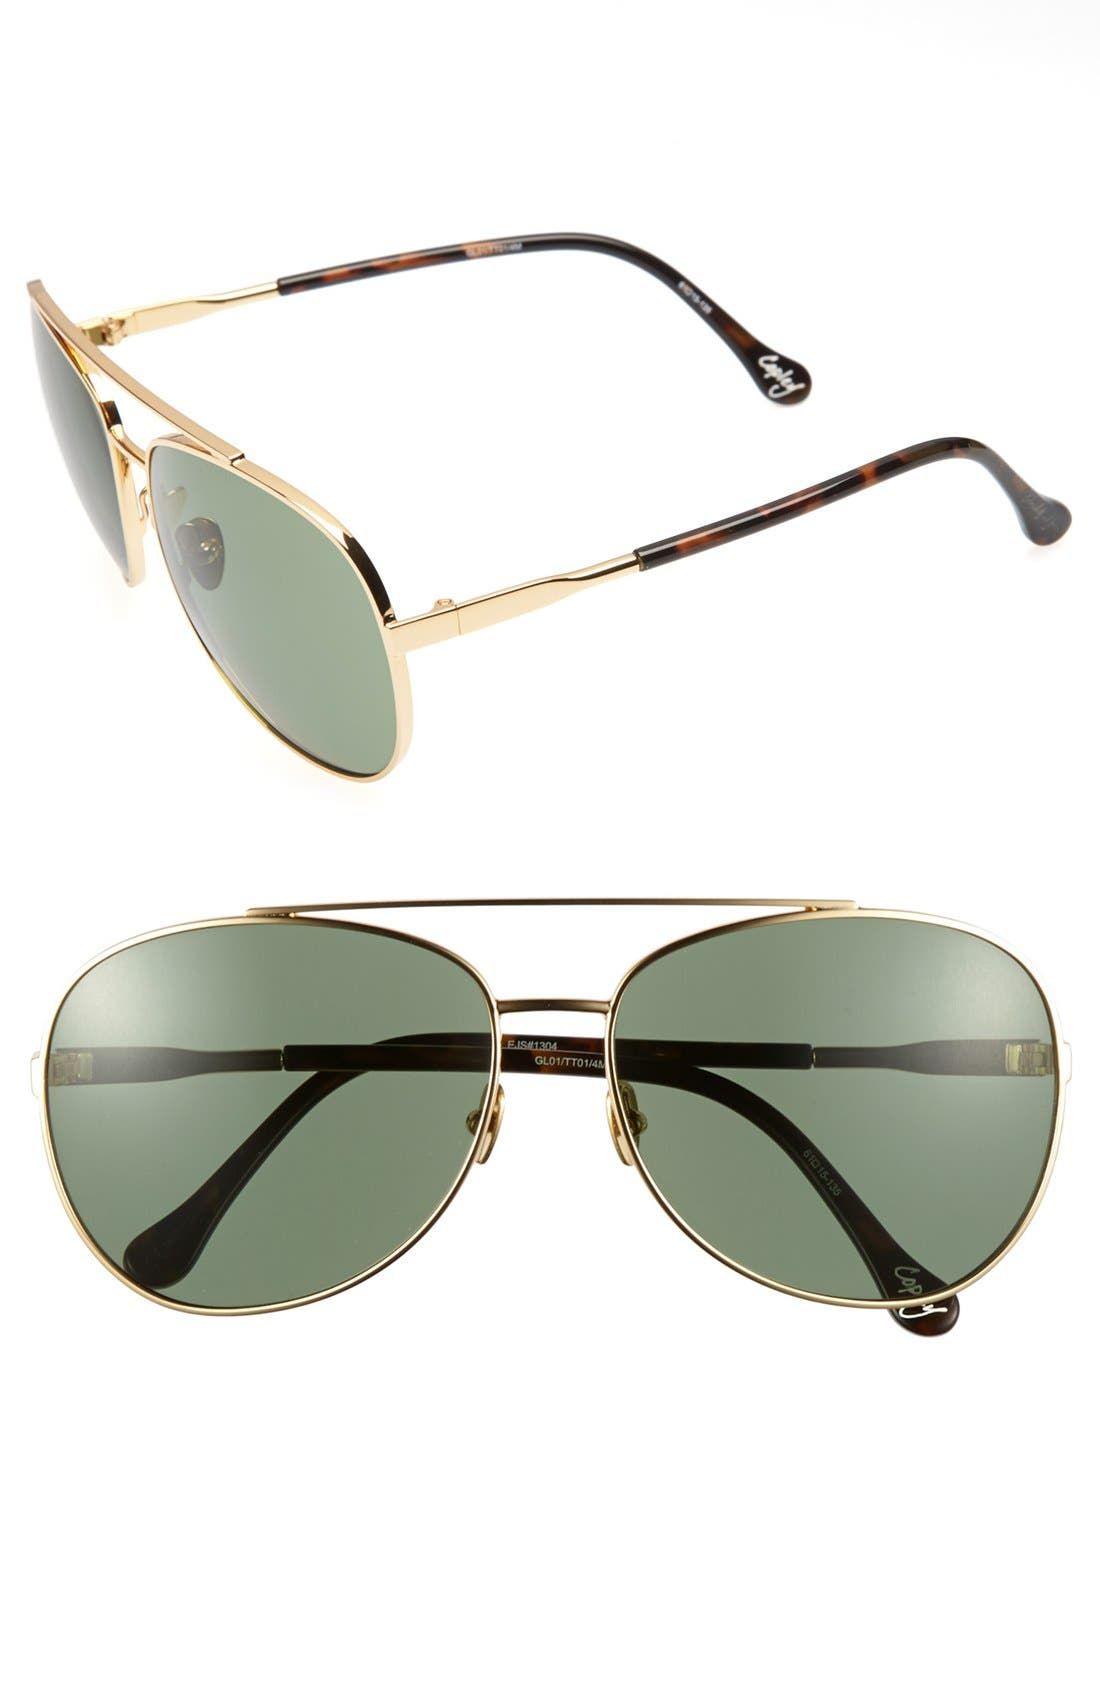 Main Image - Elizabeth & James 'Copley' 61mm Metal Aviator Sunglasses